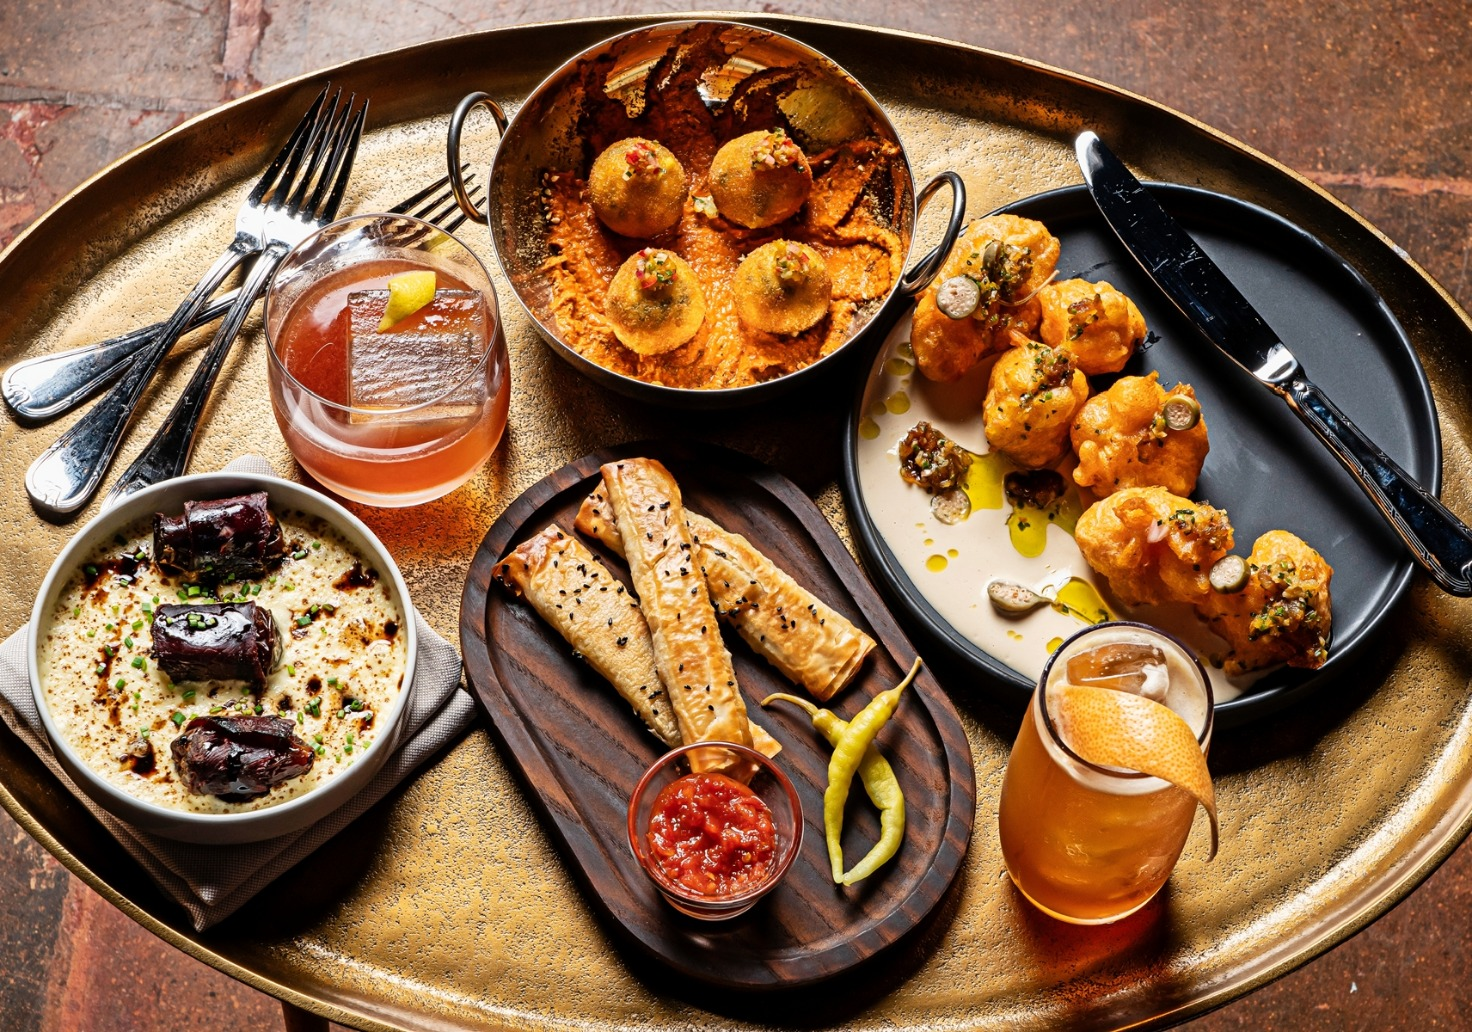 Spread of dishes at Gypsy Kitchen